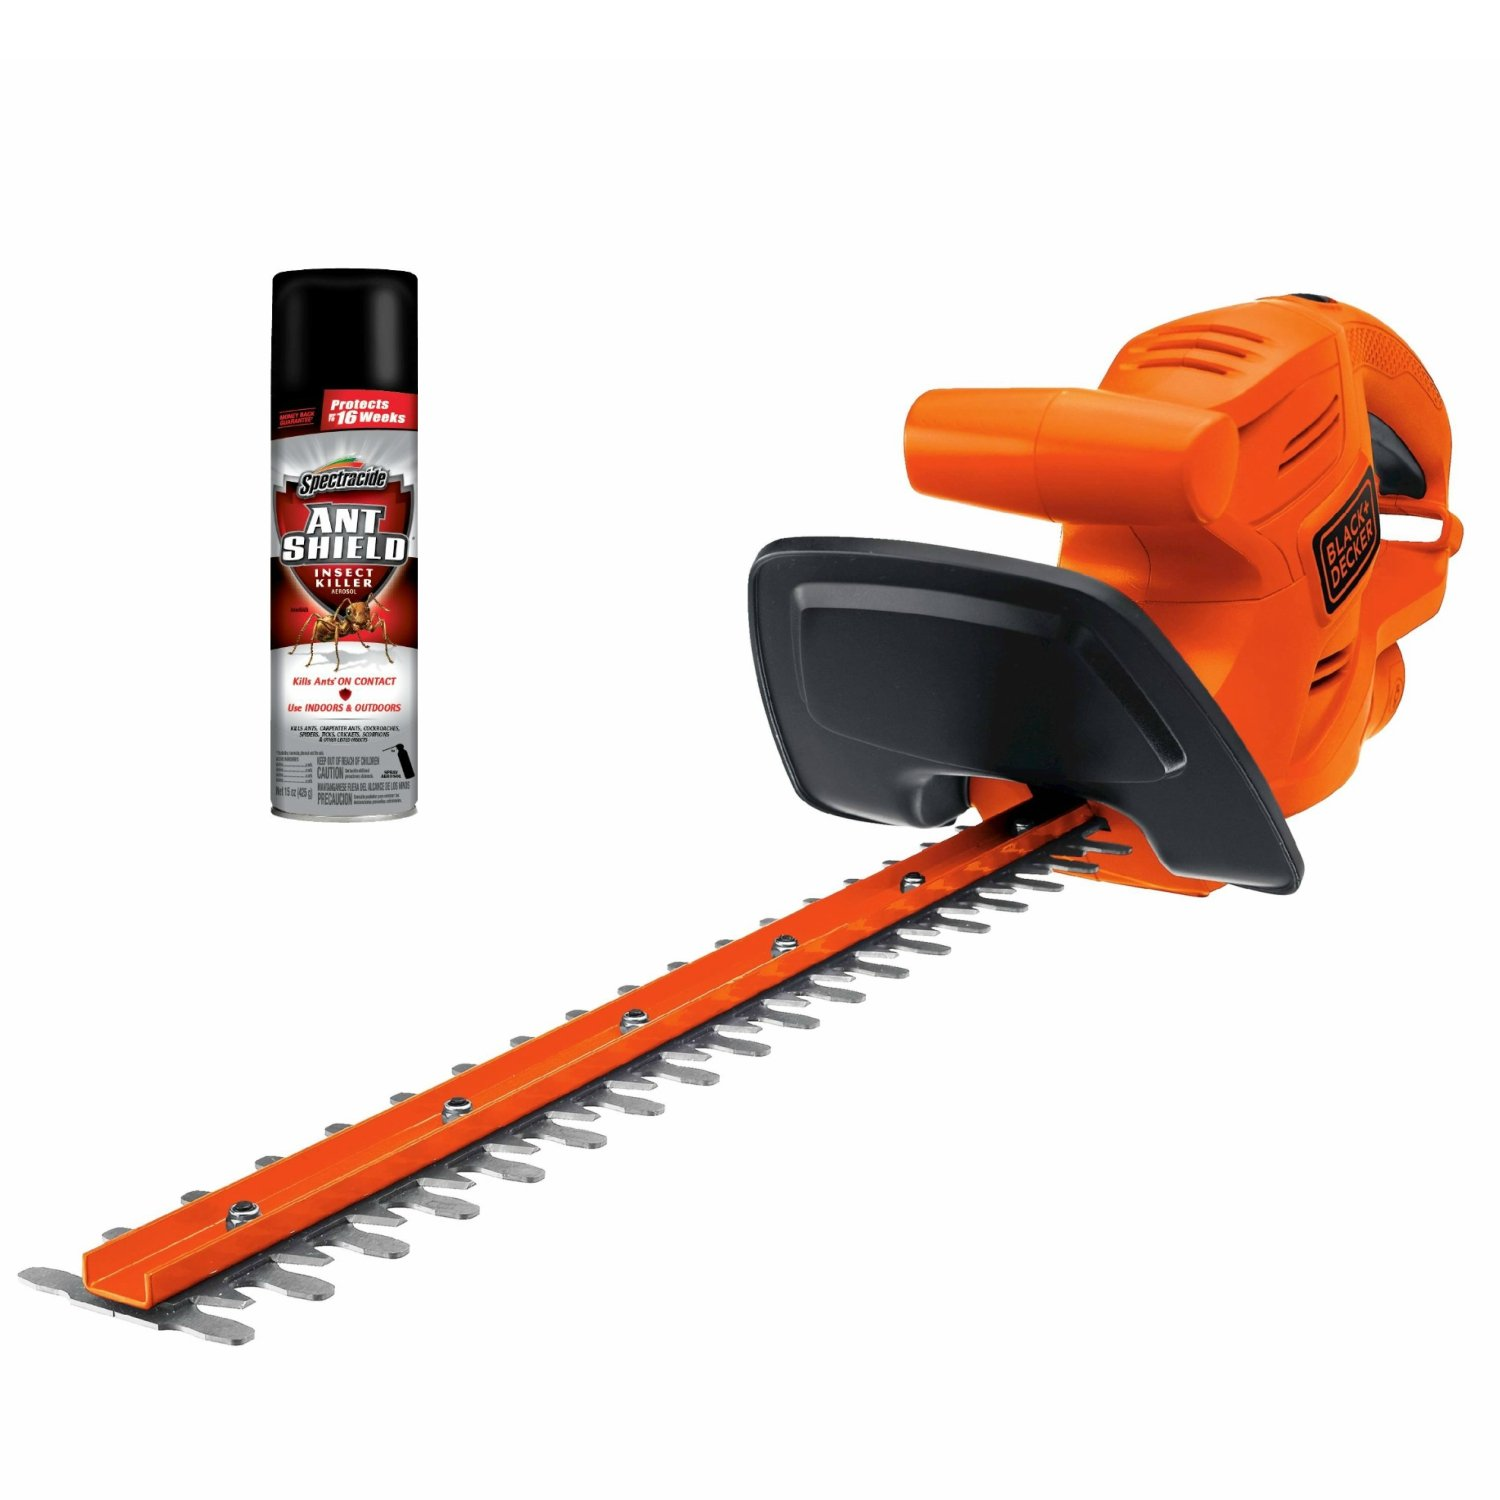 Black & Decker Lightweight 17-Inch, 3.2 AMP Motor Electric Hedge Trimmer with Ant Killer Spray by MegaMarketing